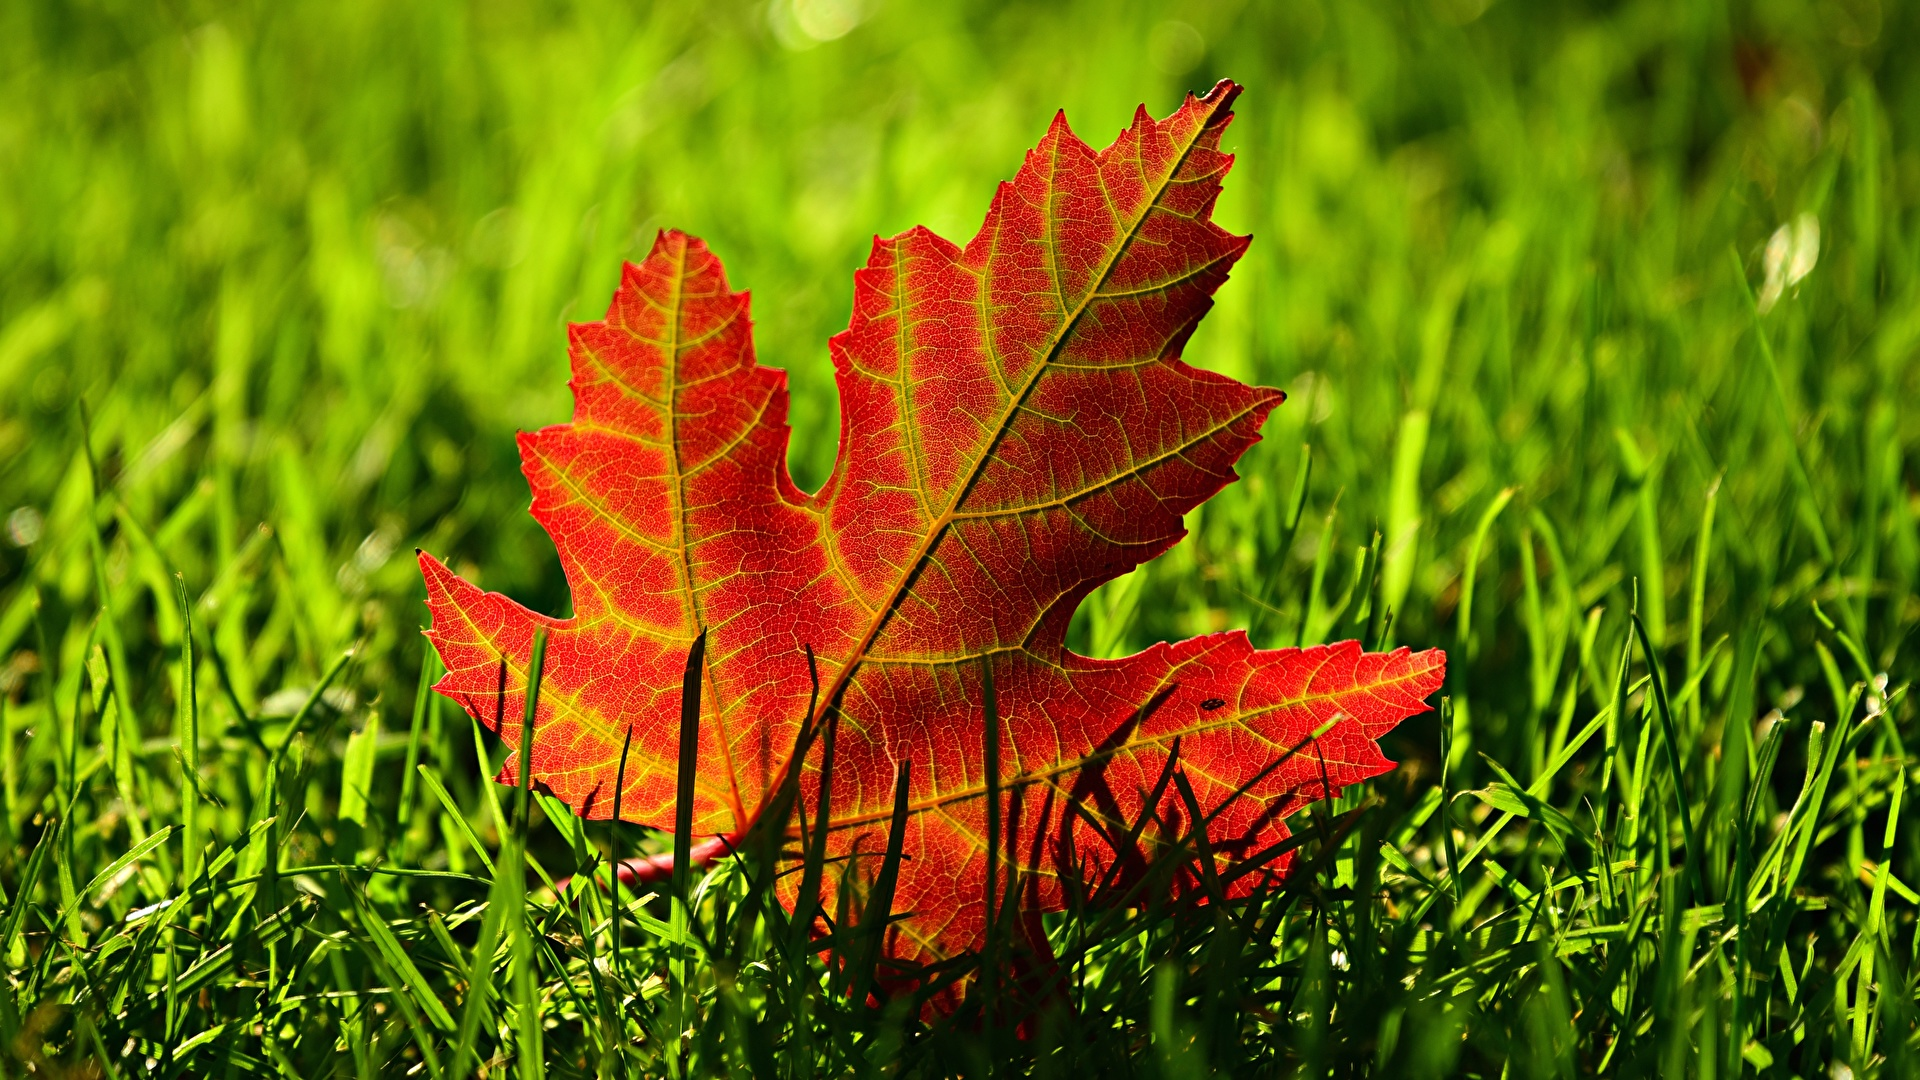 Wallpaper Leaf Acer Nature Grass Closeup 1920x1080